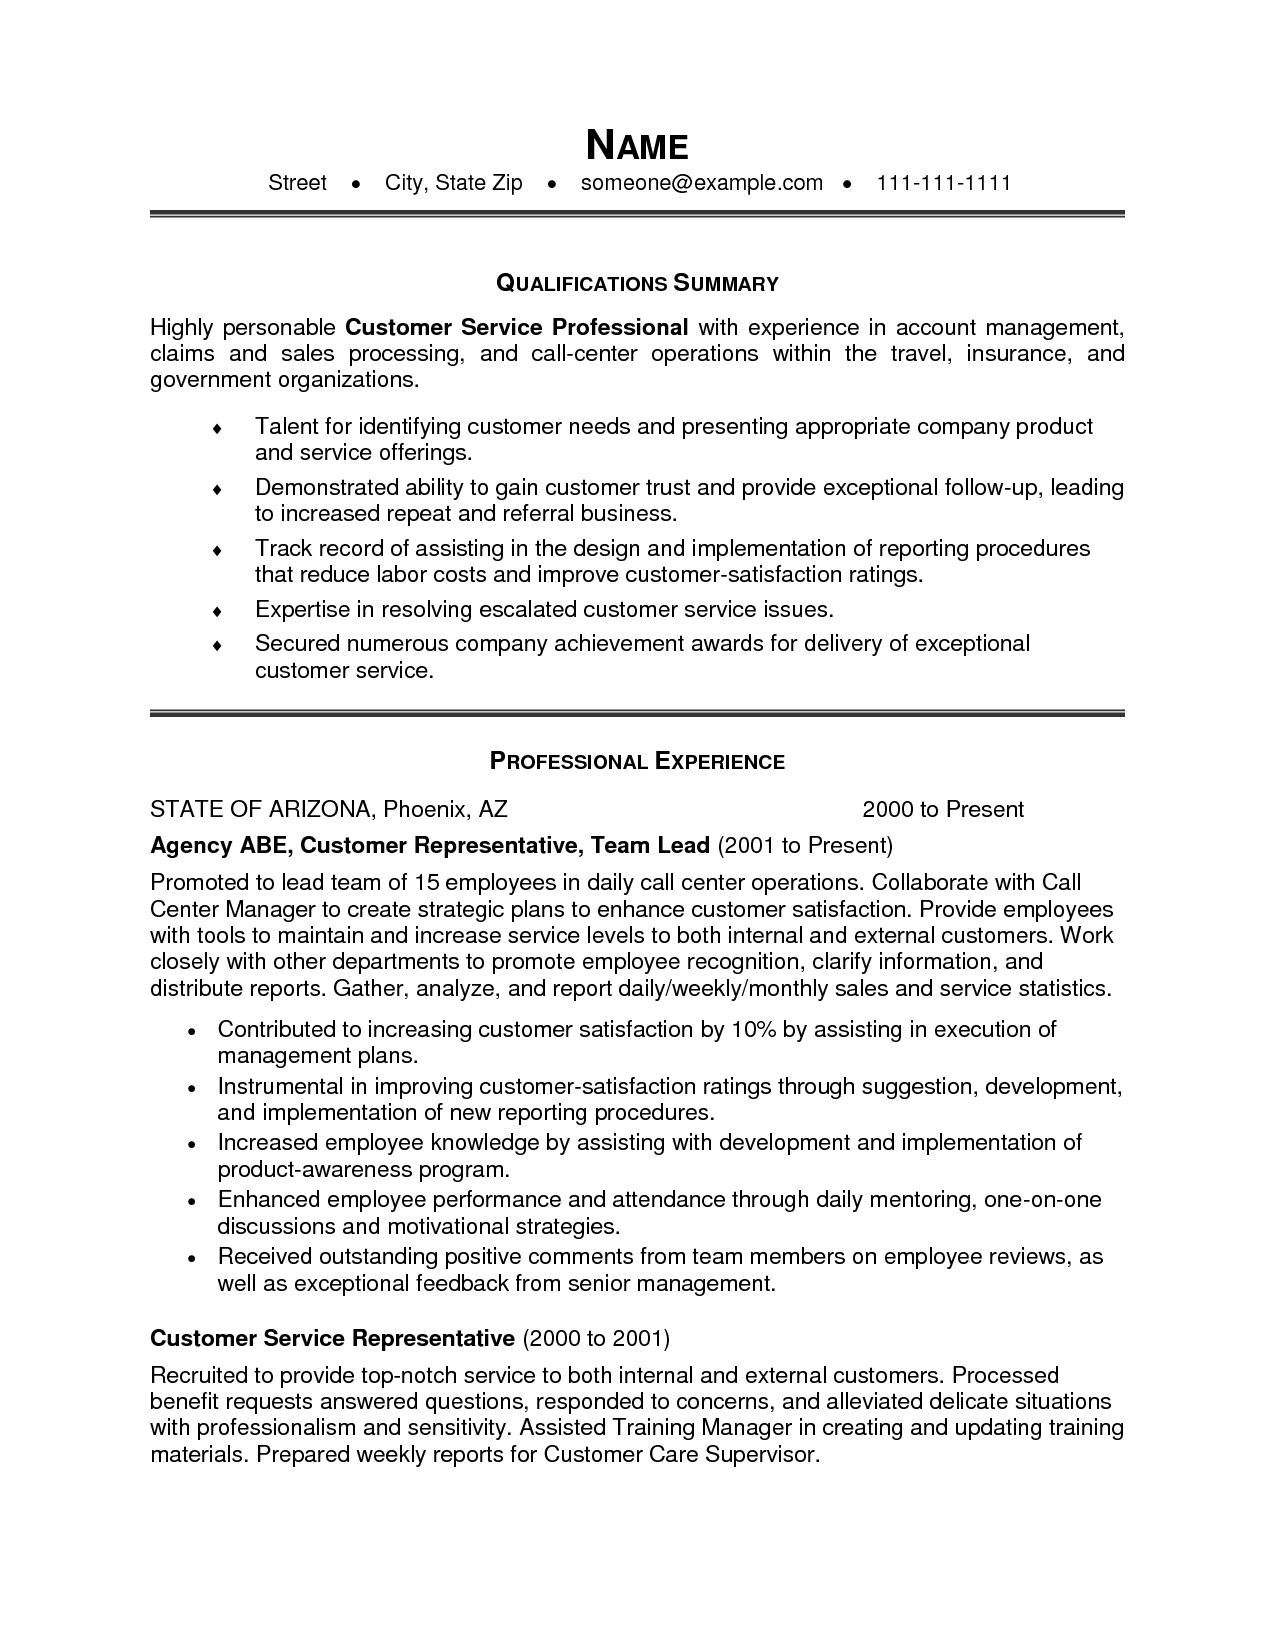 sample professional summary for customer service resume canre